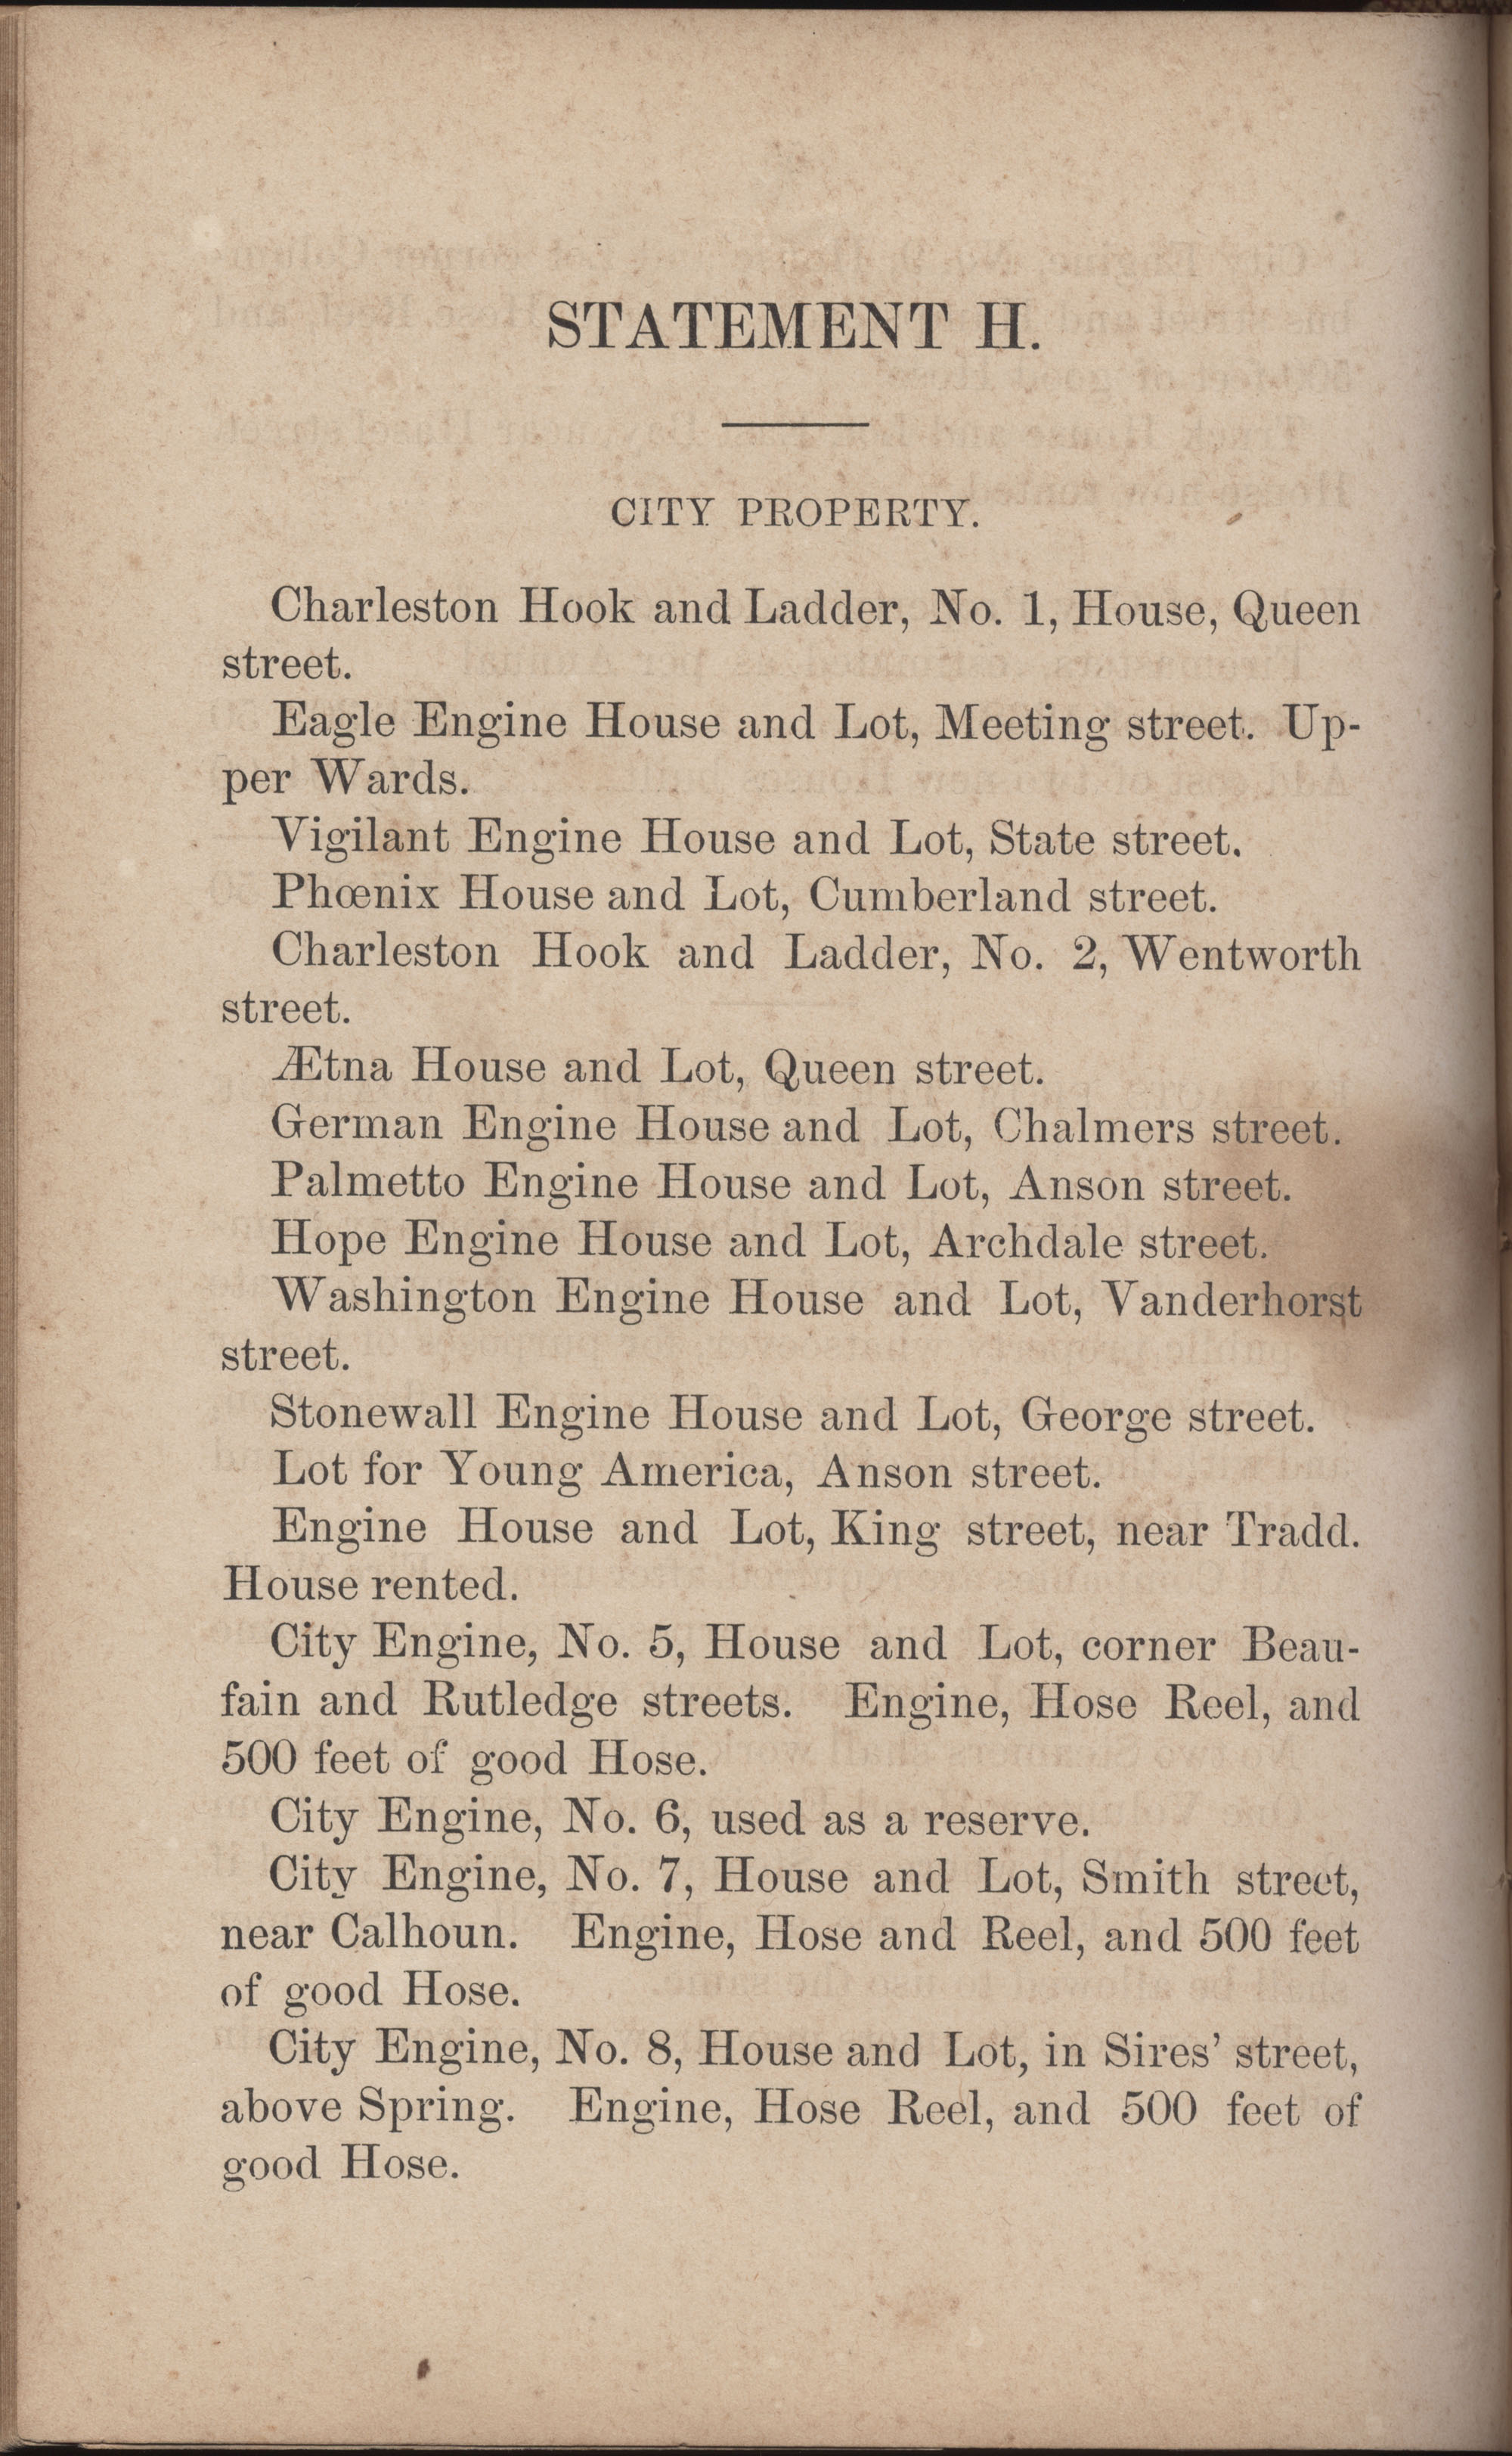 Annual Report of the Chief of the Fire Department of the City of Charleston, page 281